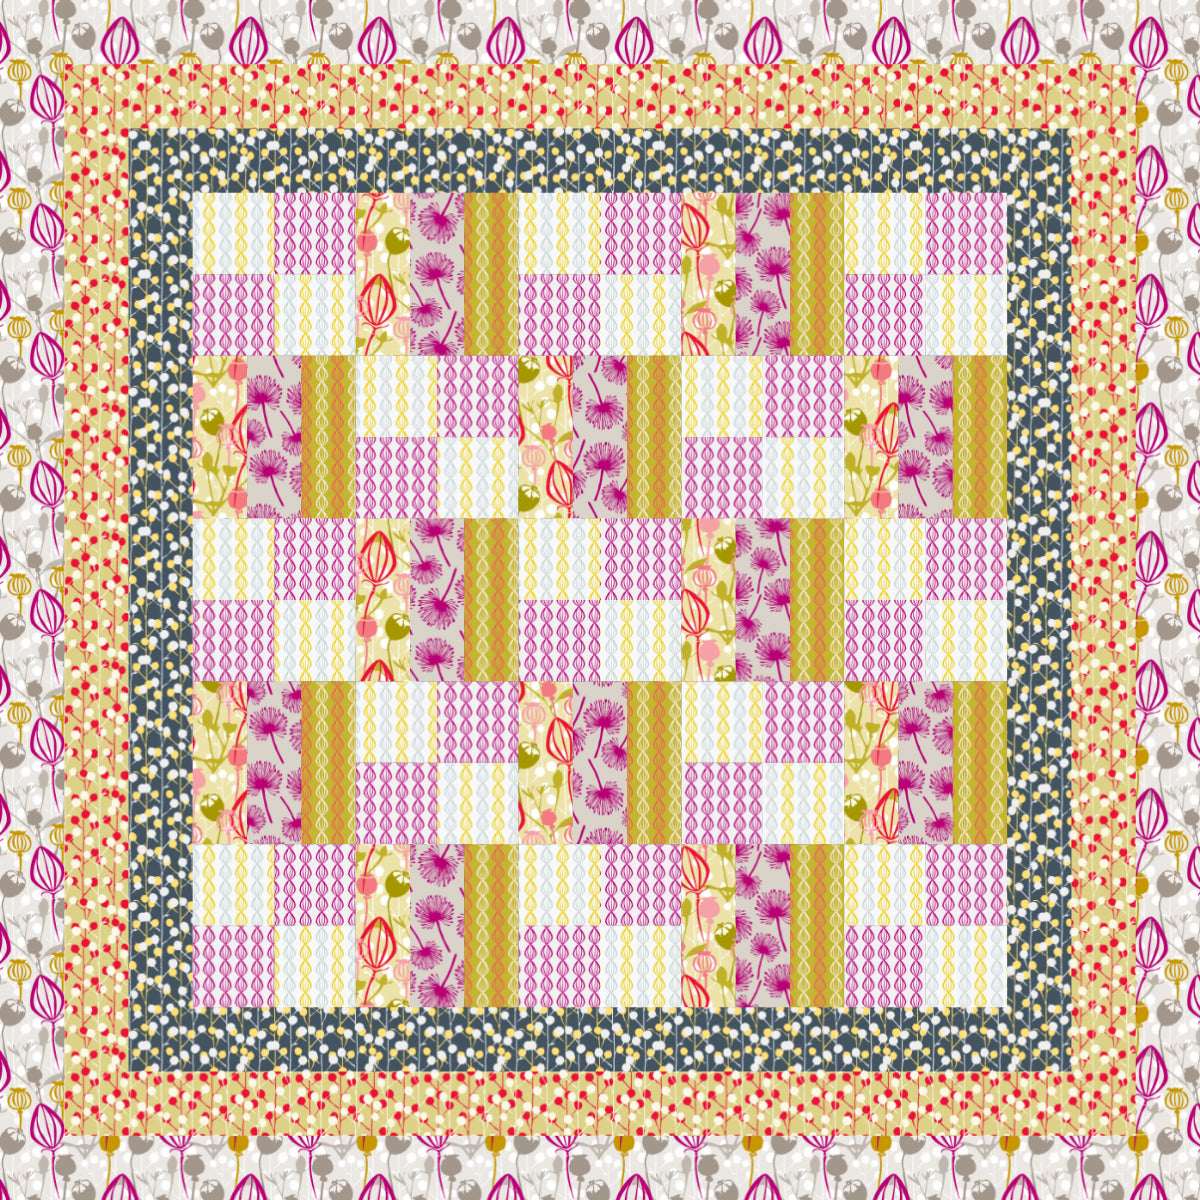 CBTOP-2006 Custom Ready-To-Quilt Panel